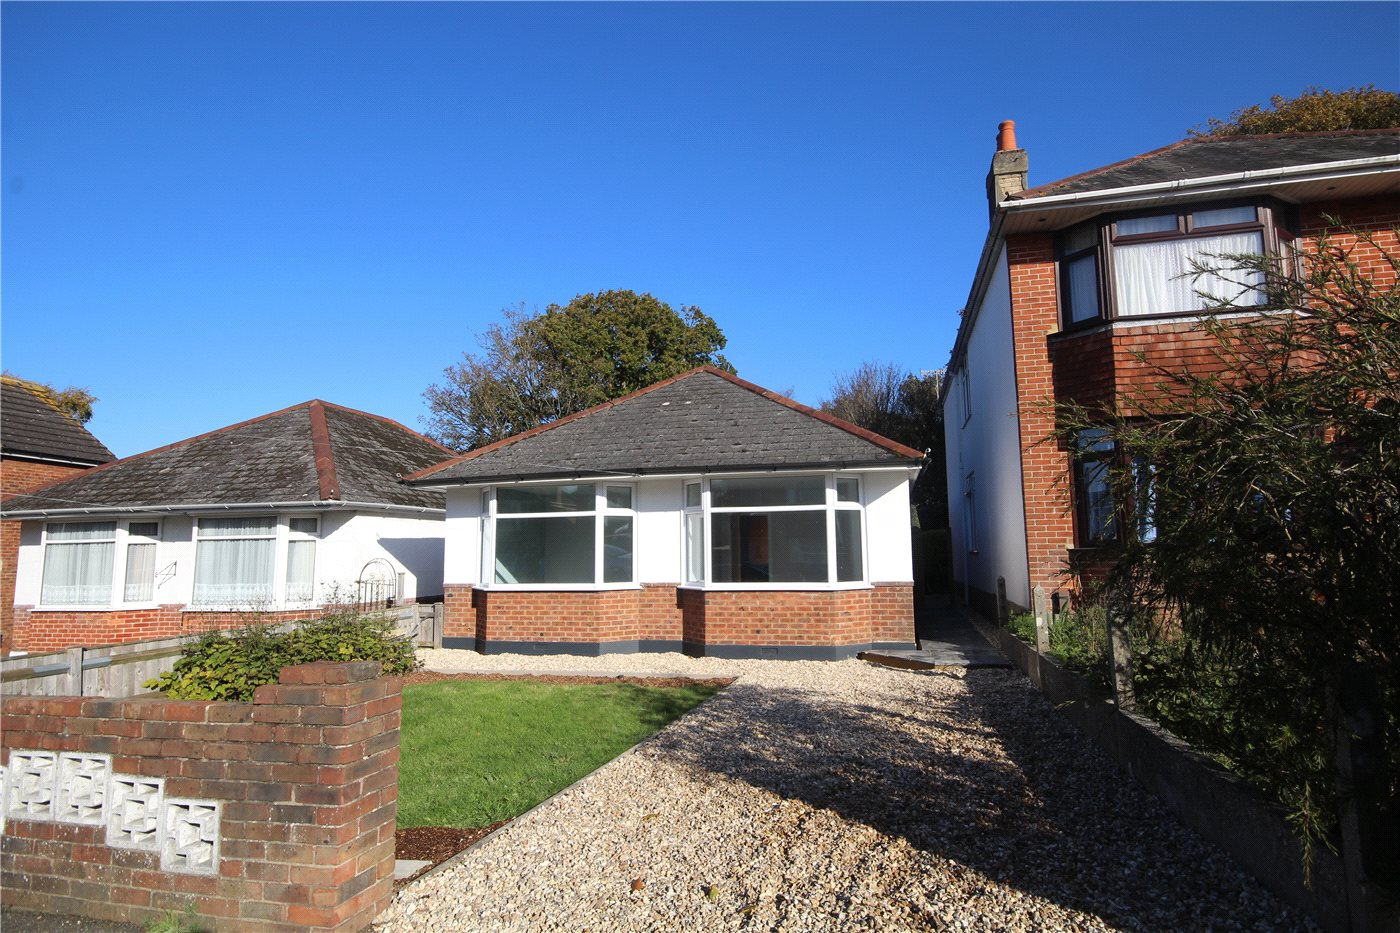 2 Bedrooms Detached Bungalow for sale in Dale Road, Oakdale, Poole, Dorset, BH15